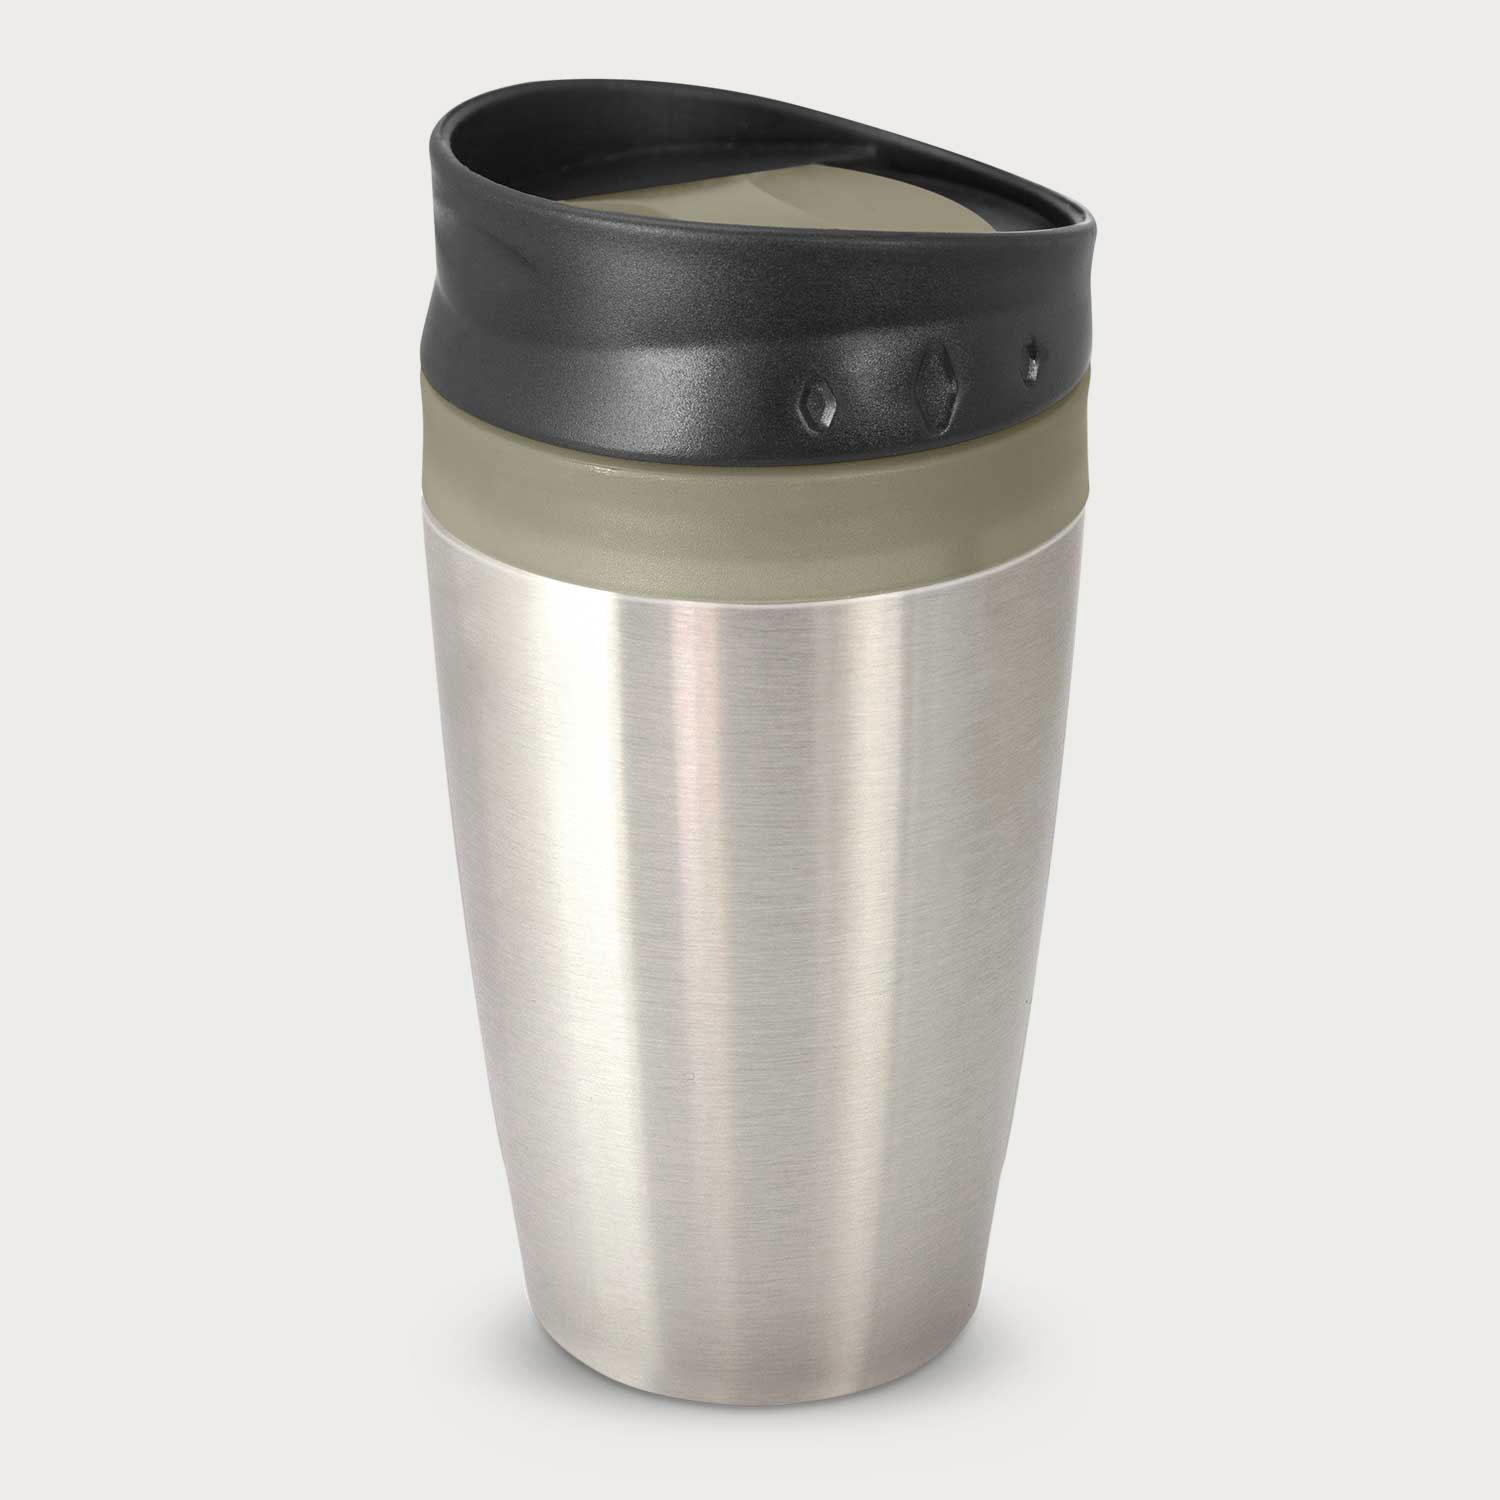 Octane Coffee Cup | PrimoProducts